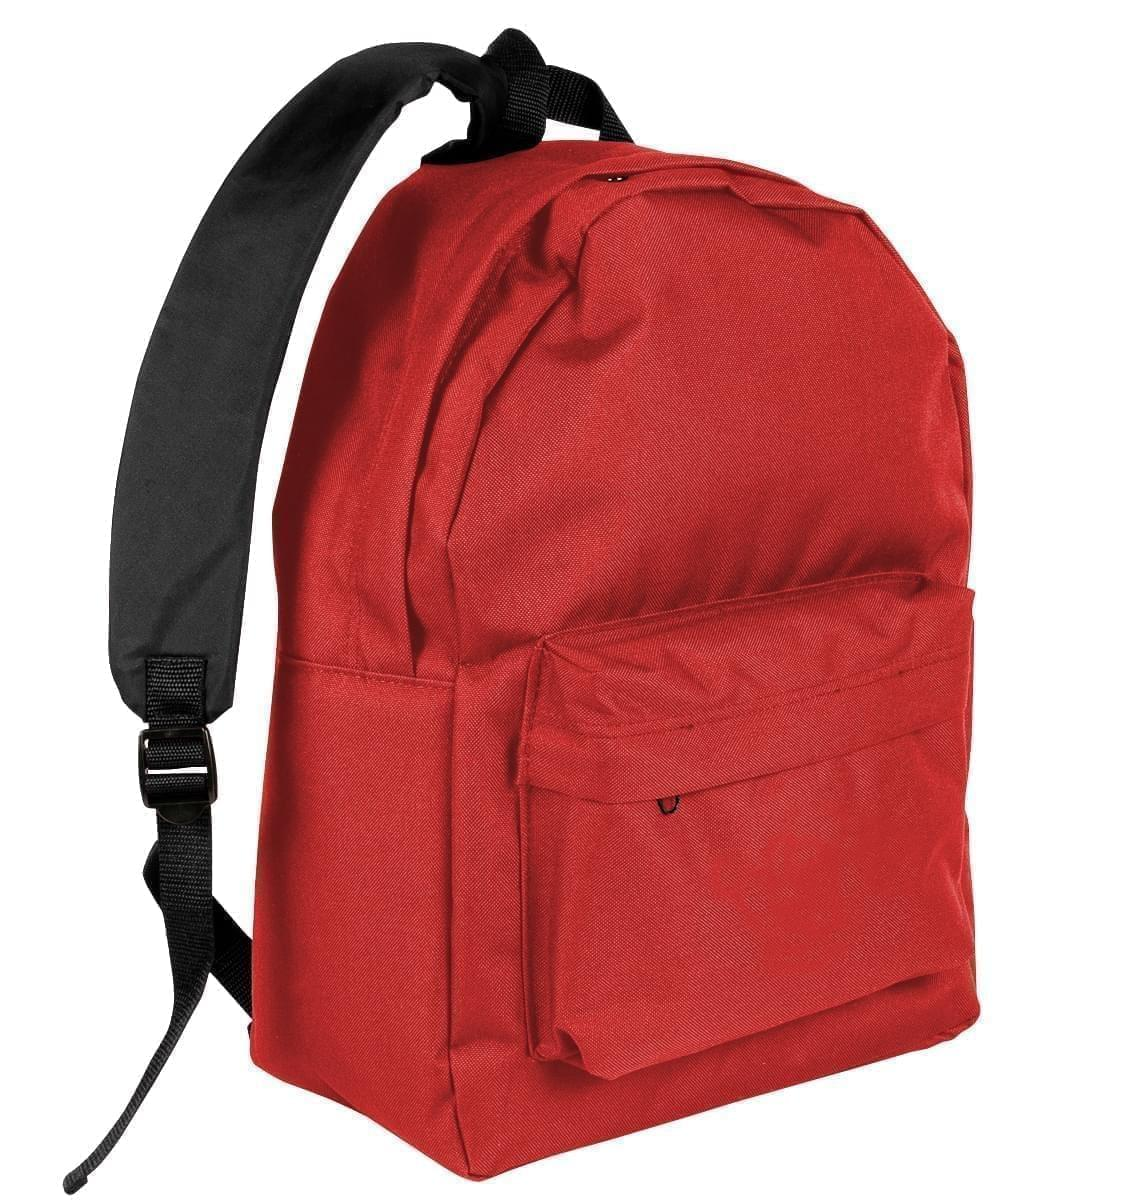 USA Made Nylon Poly Backpack Knapsacks, Red-Black, 8960-AZR